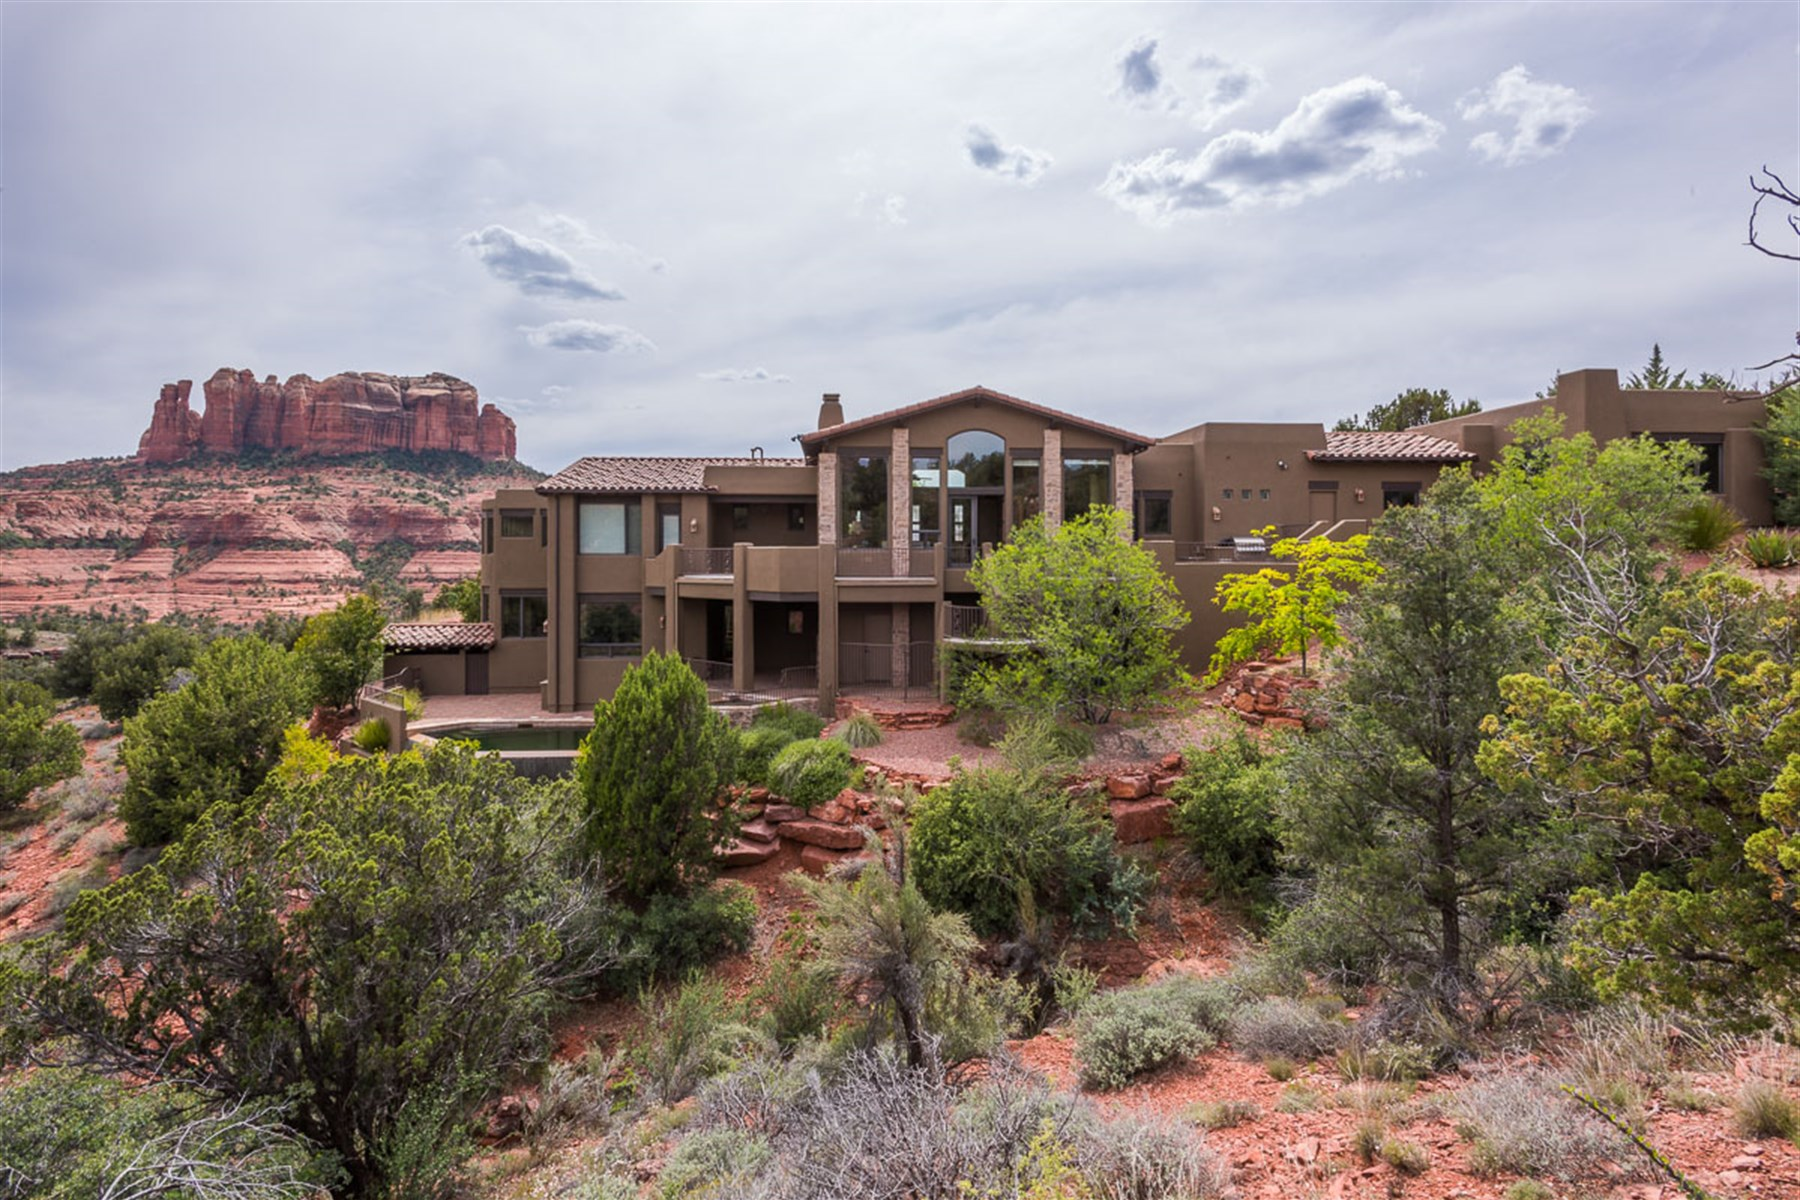 Nhà ở một gia đình vì Bán tại Sante Fe luxury home sits elevated in this magical environment of Back O' Beyond 15 ROSEMARY CT Sedona, Arizona, 86336 Hoa Kỳ